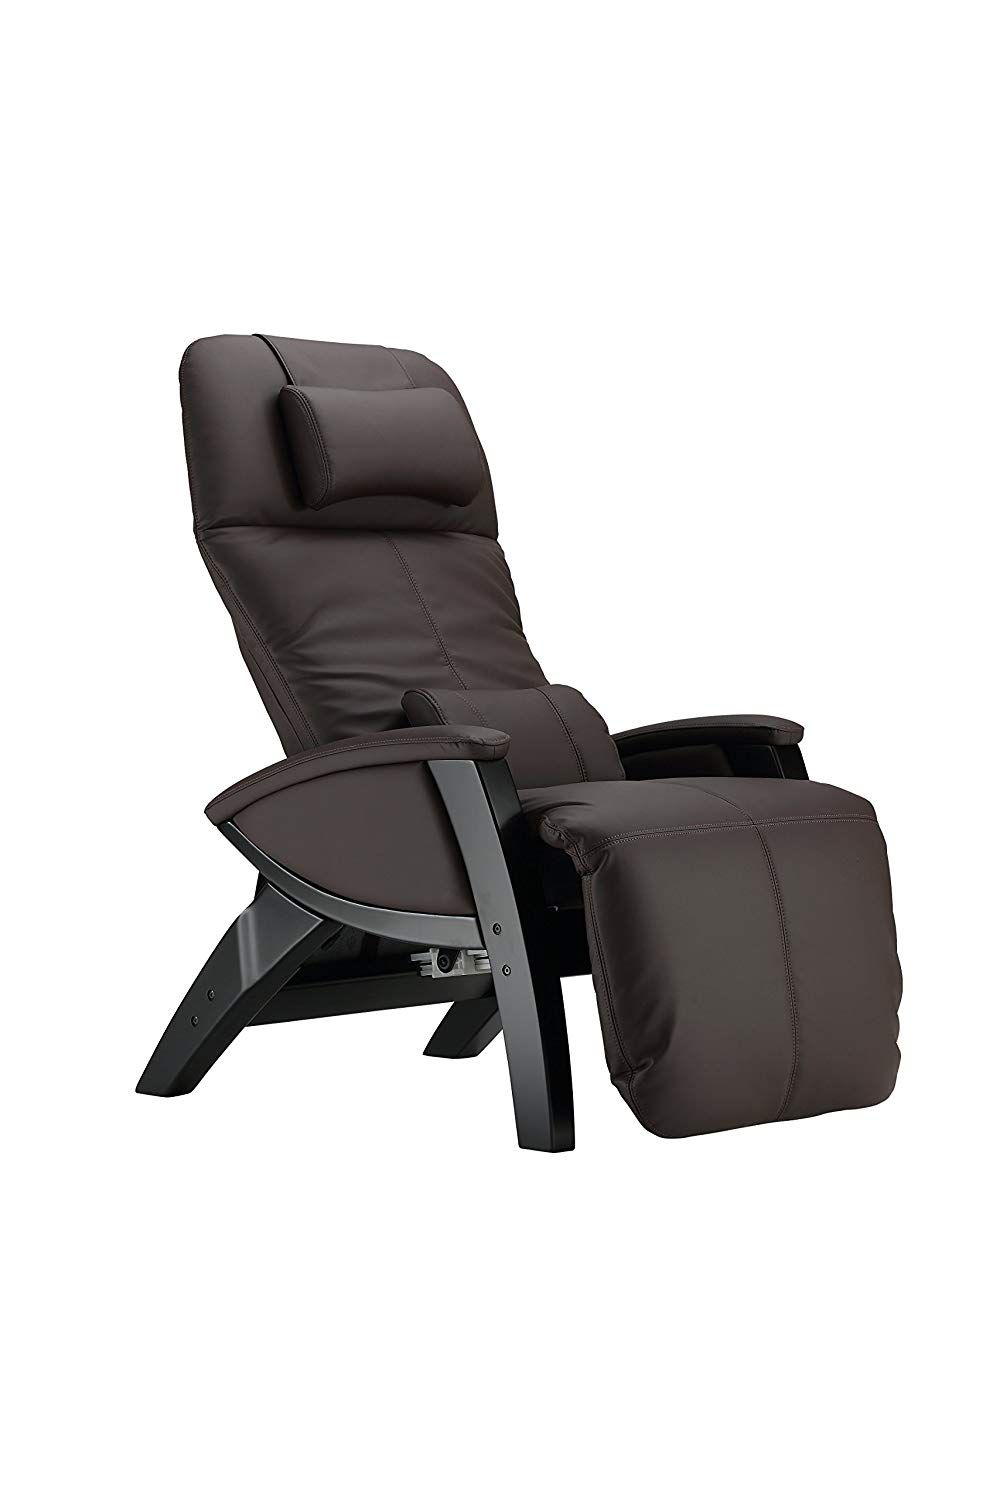 Amazon Com Cozzia Dual Power Zg Recliner Chocolate Kitchen Dining Chair Farmhouse Table Chairs